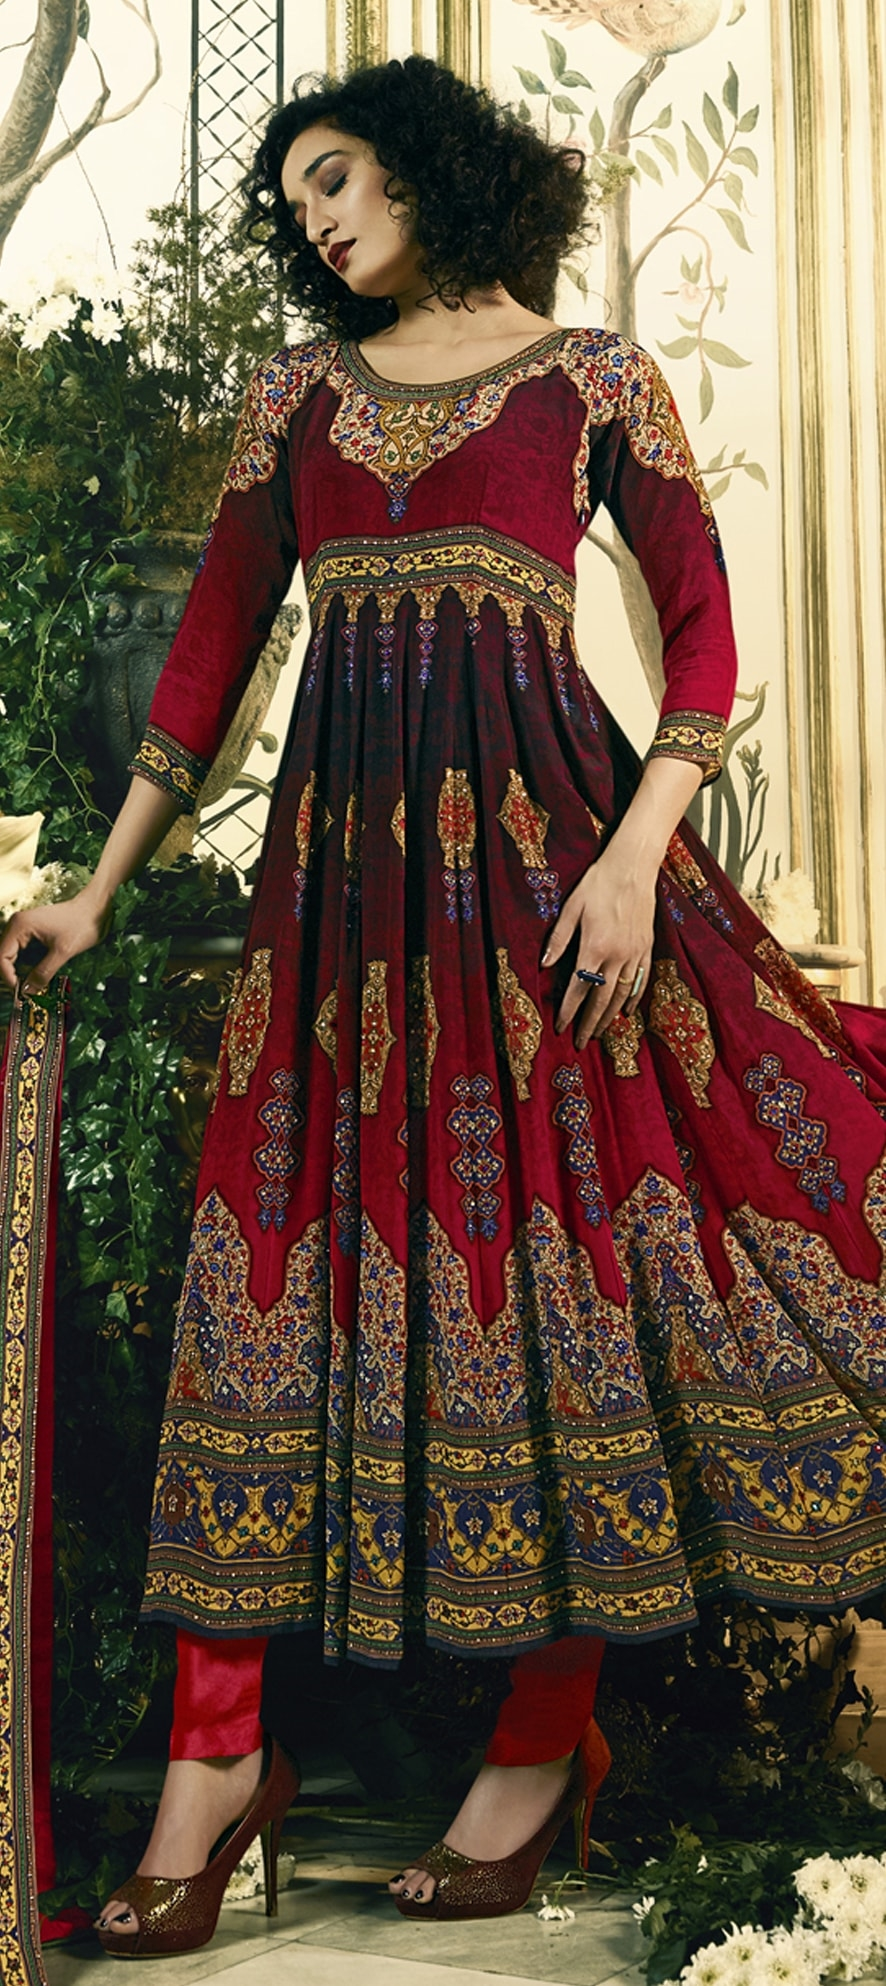 909531: Red and Maroon color family stitched Bollywood Salwar Kameez .